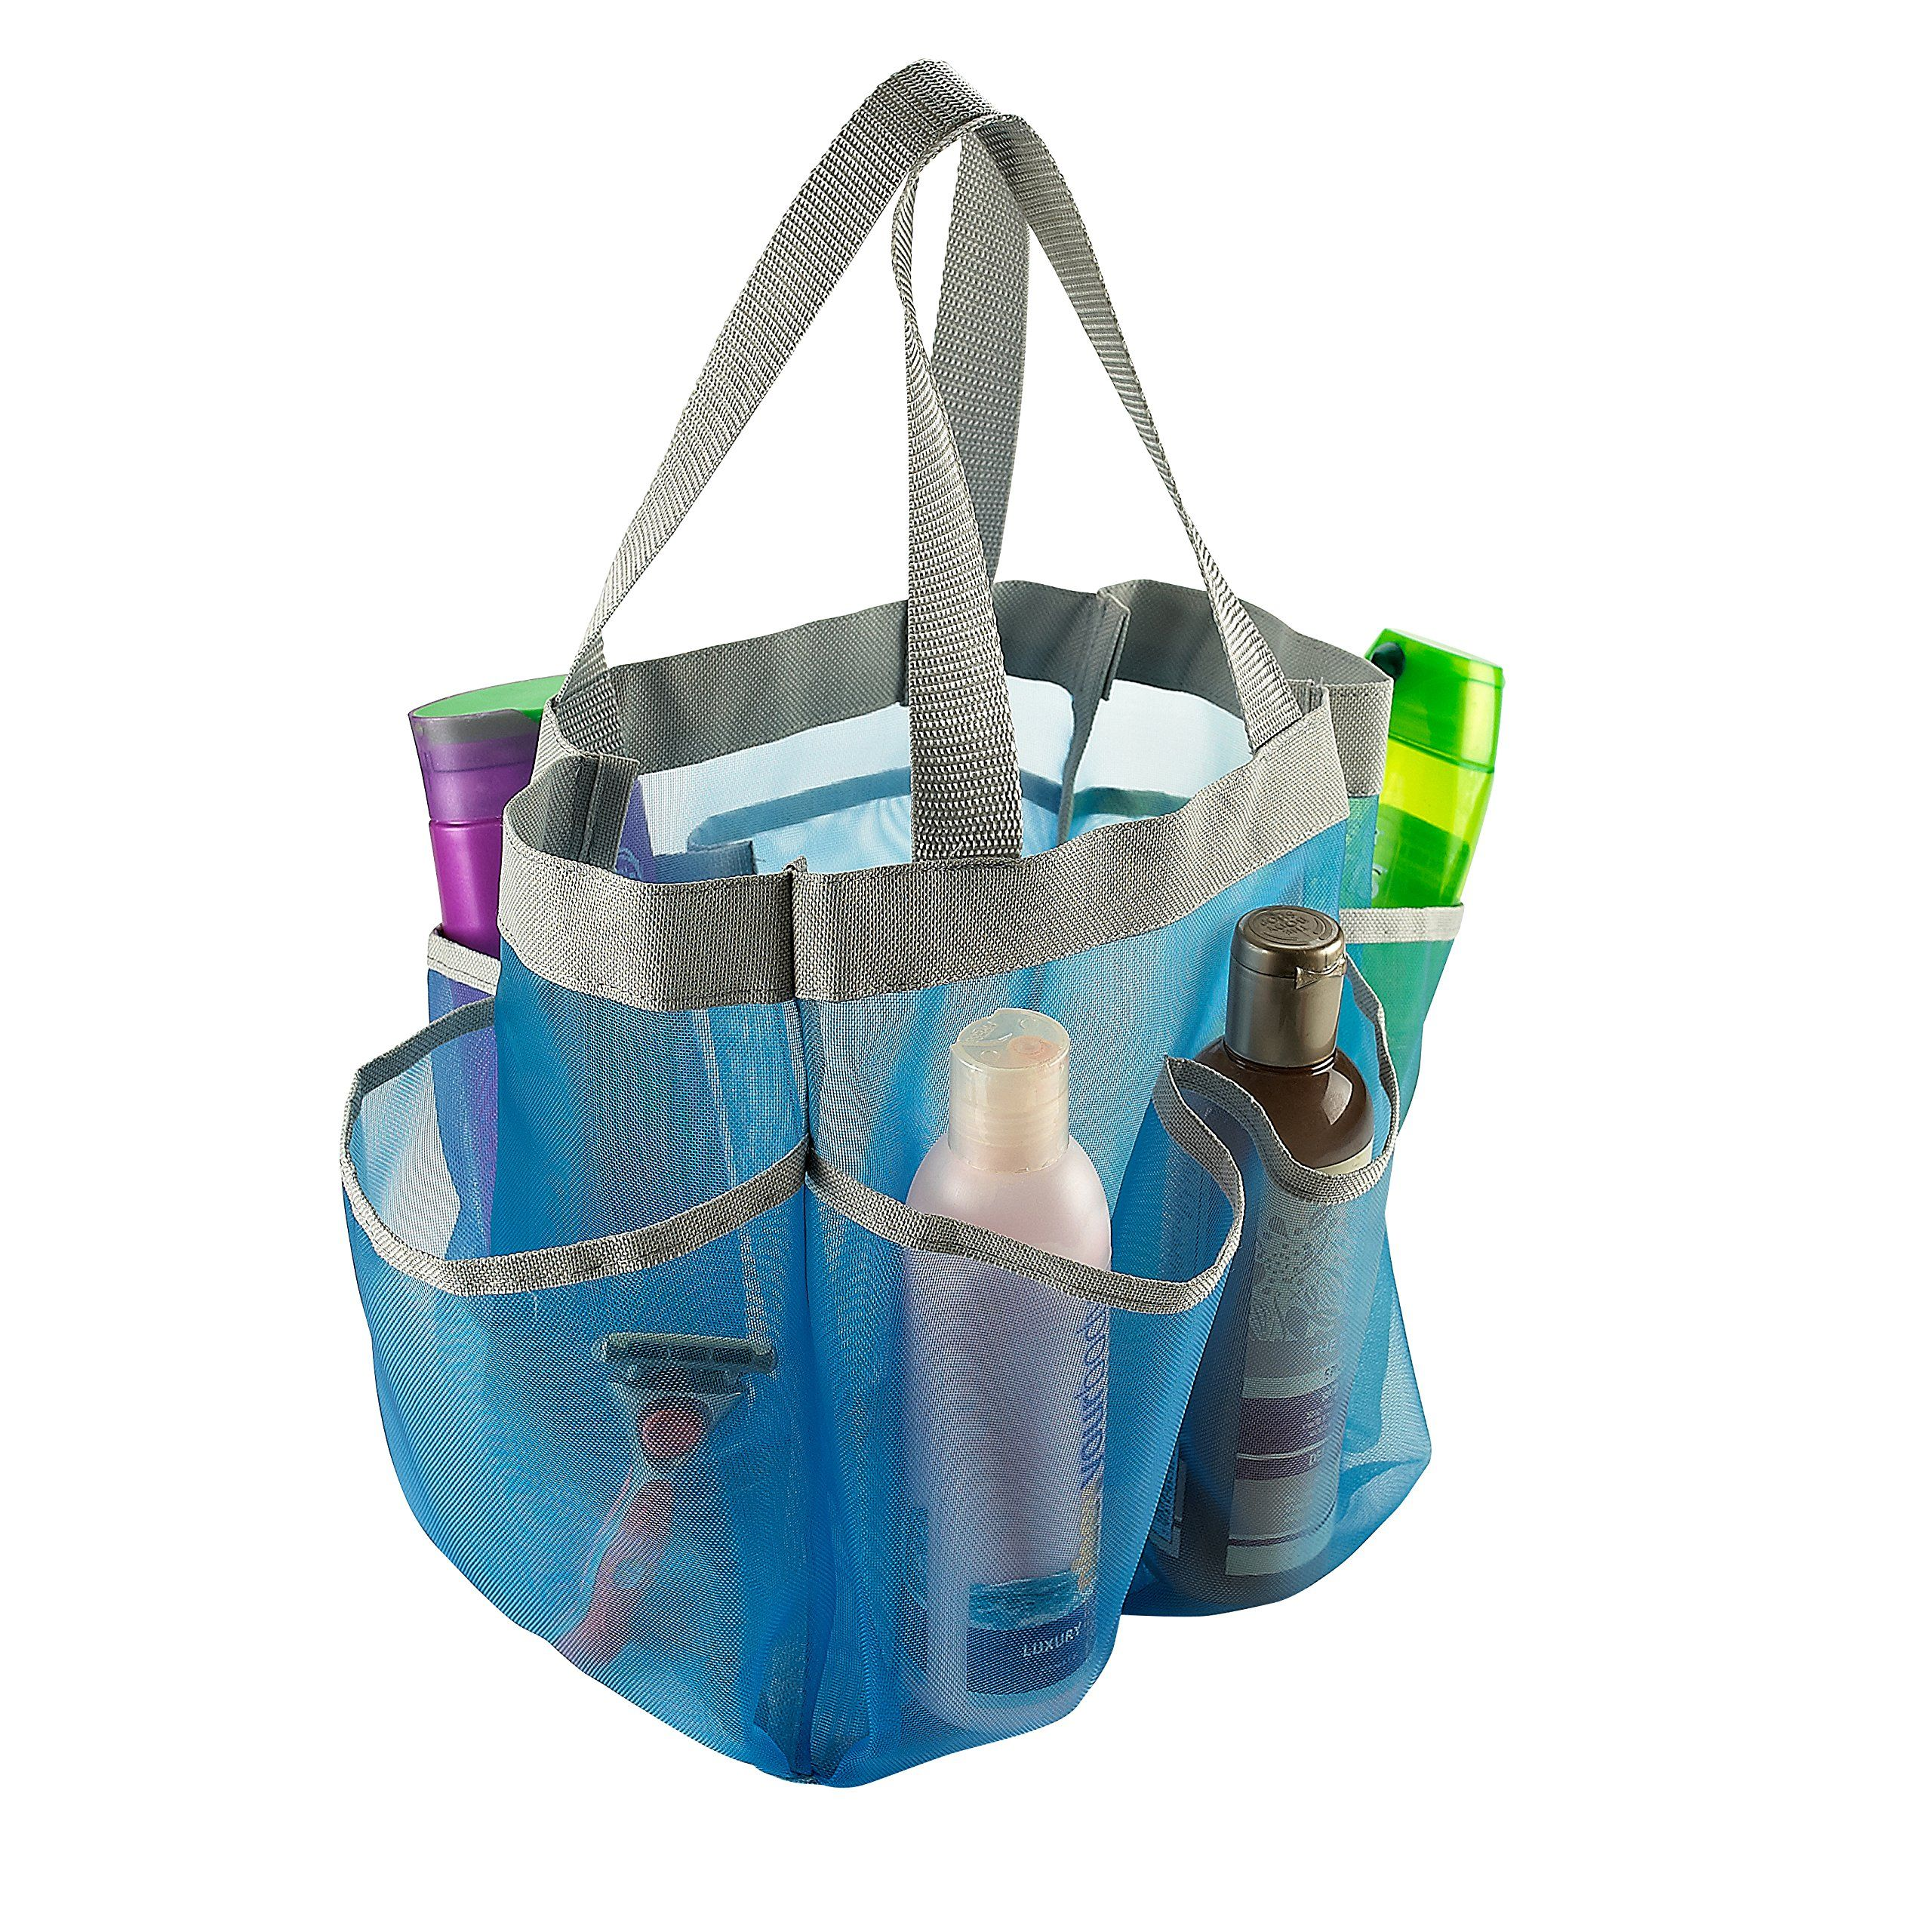 7 Pocket Shower Caddy Tote (Blue) | Bed and Bath | Pinterest | Bath